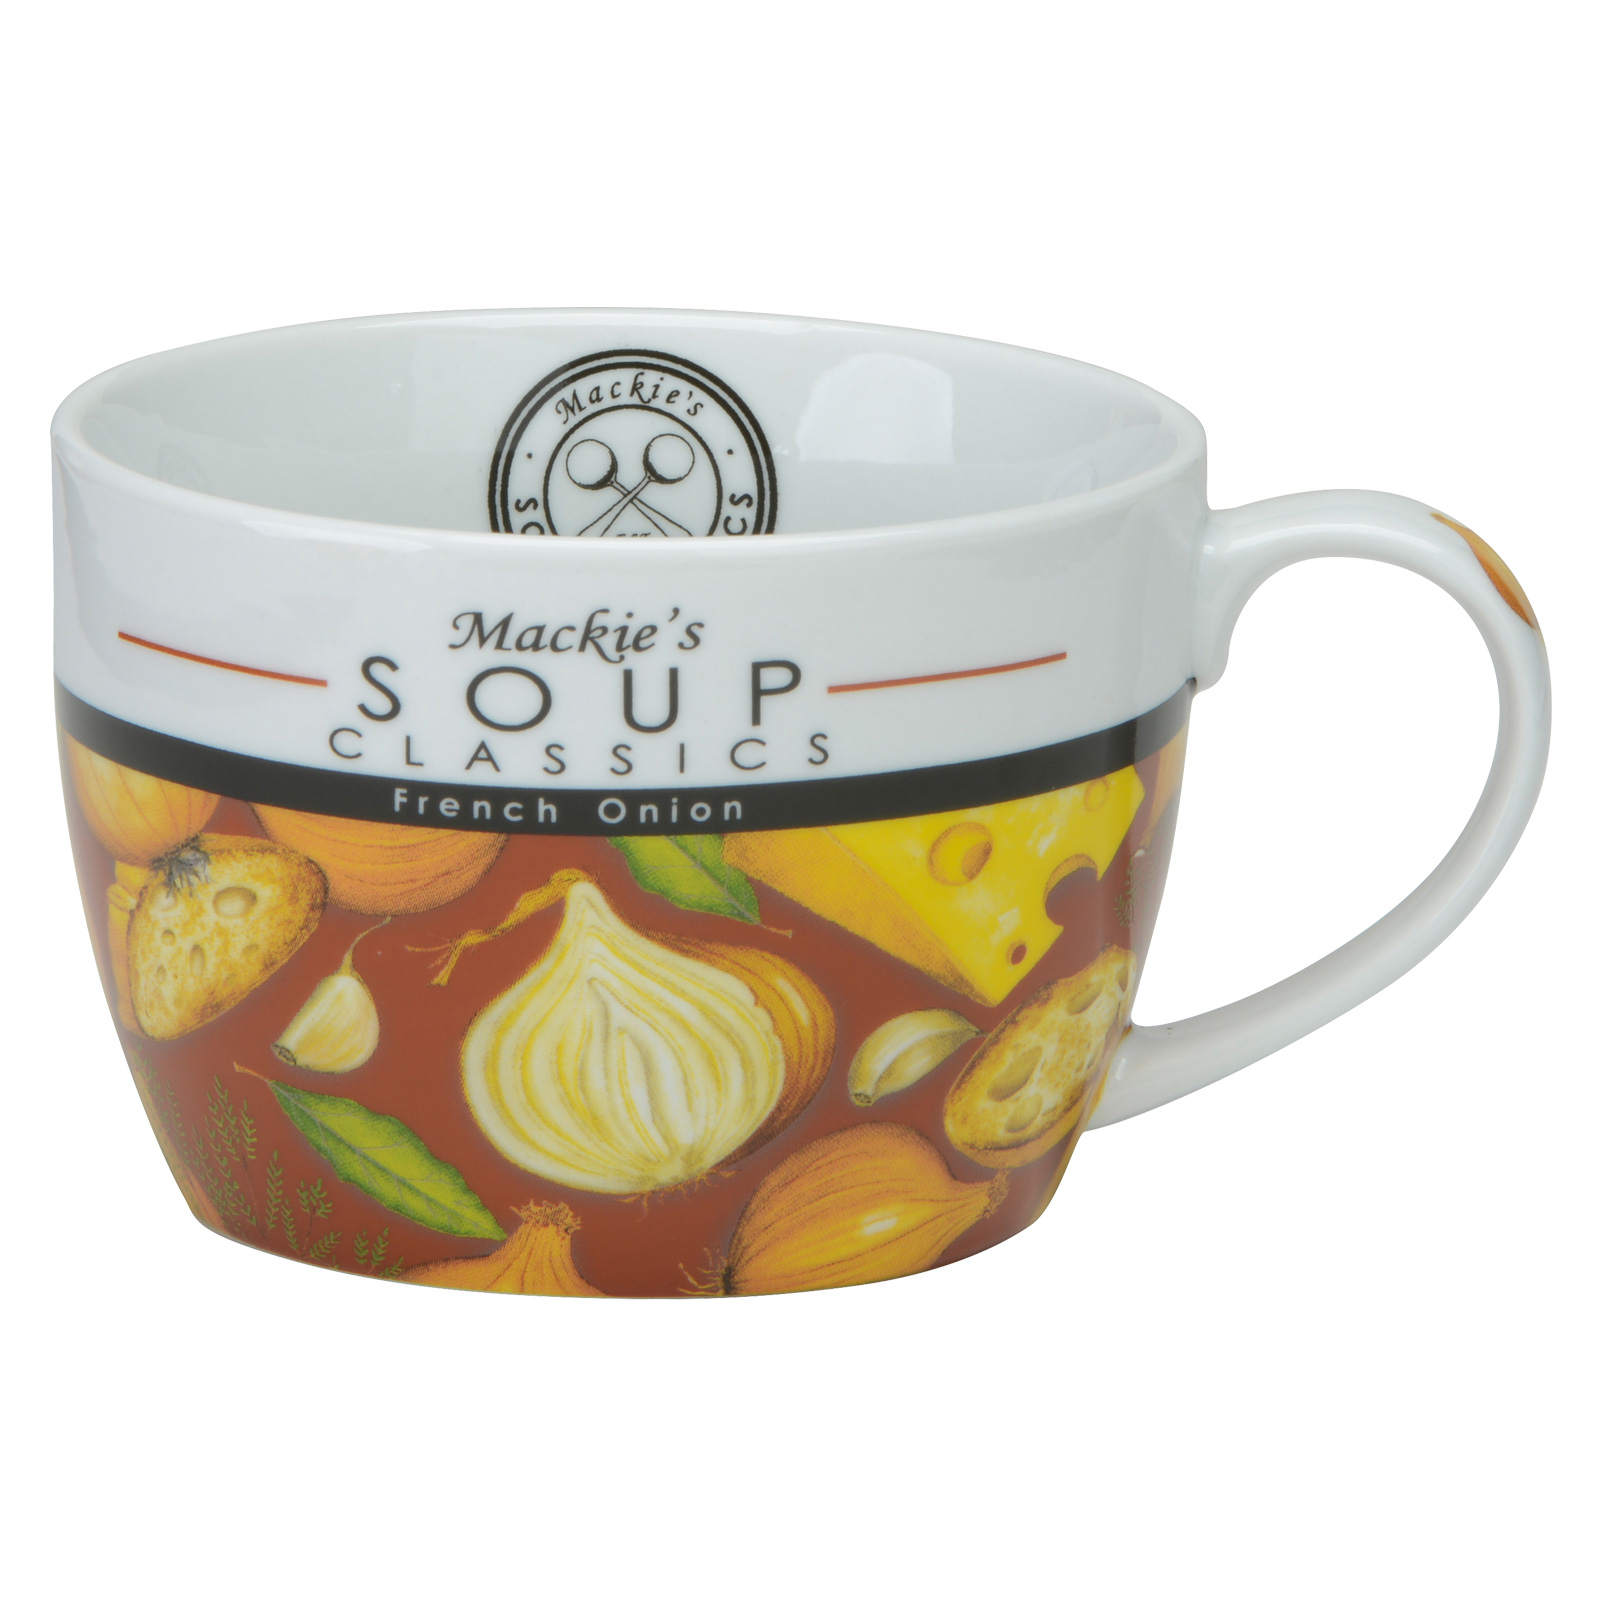 Mackie's French Onion Soup Mug by BIA